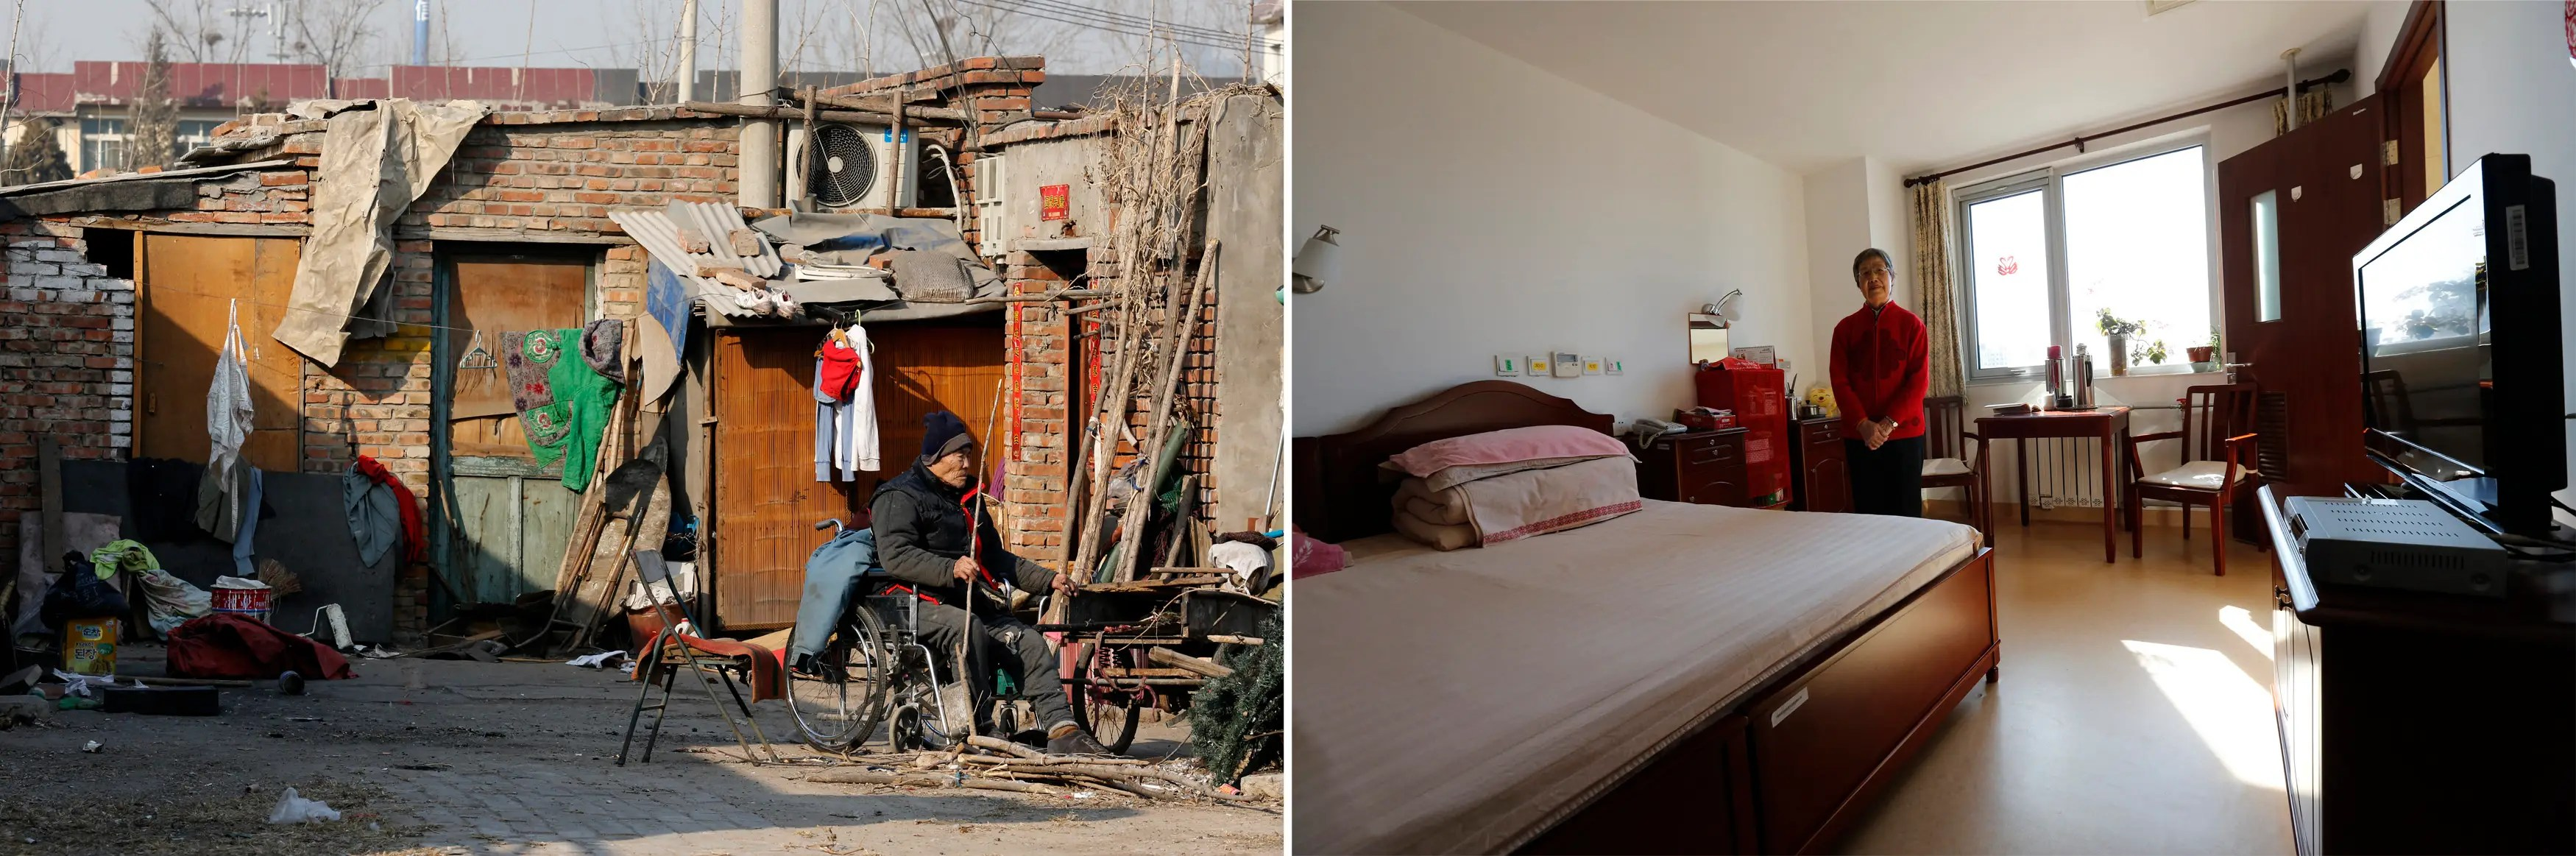 (L) A man sits in a wheelchair in front of his house in a residential area for migrant workers in Beijing and (R) a resident of the Beijing First Social Welfare Institution affiliated nursing home poses in her bedroom in the nursing home.